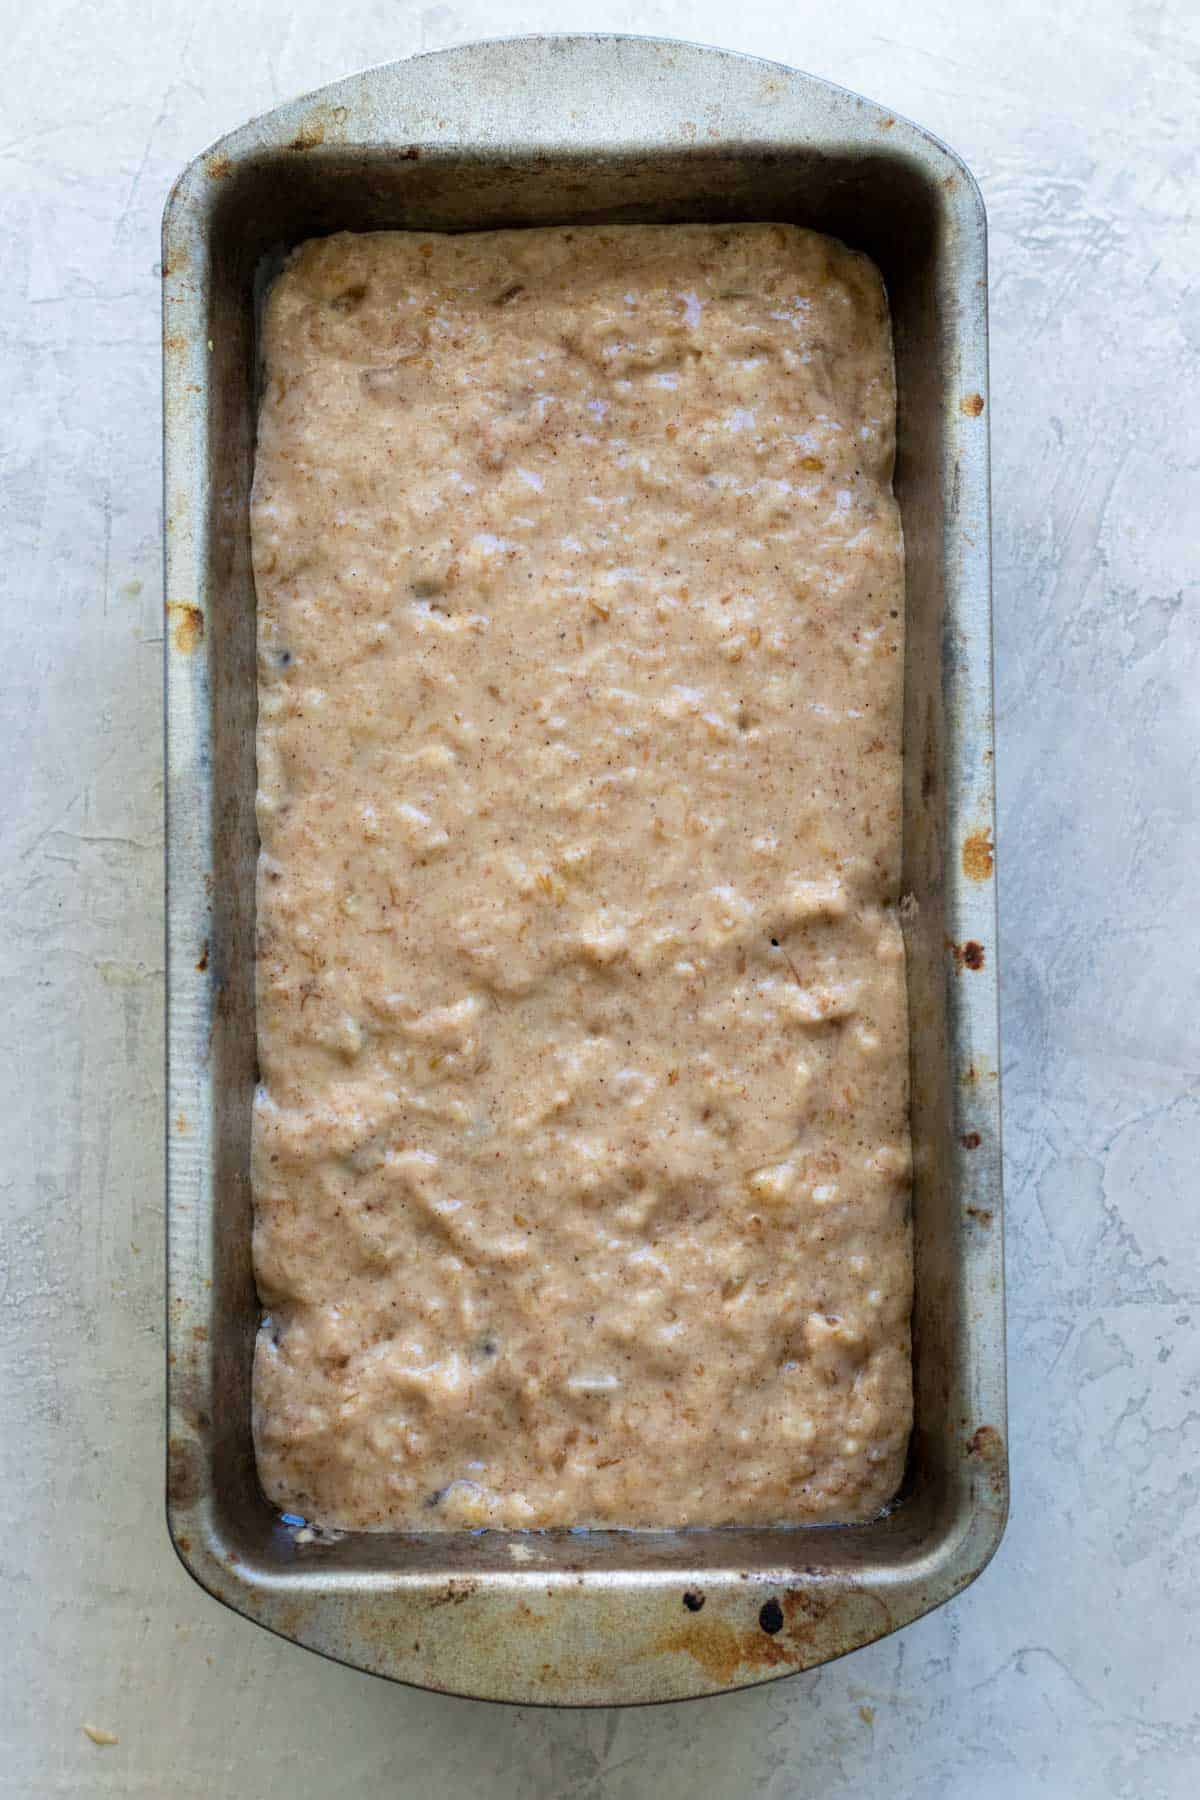 Bread batter poured into loaf pan before baking.